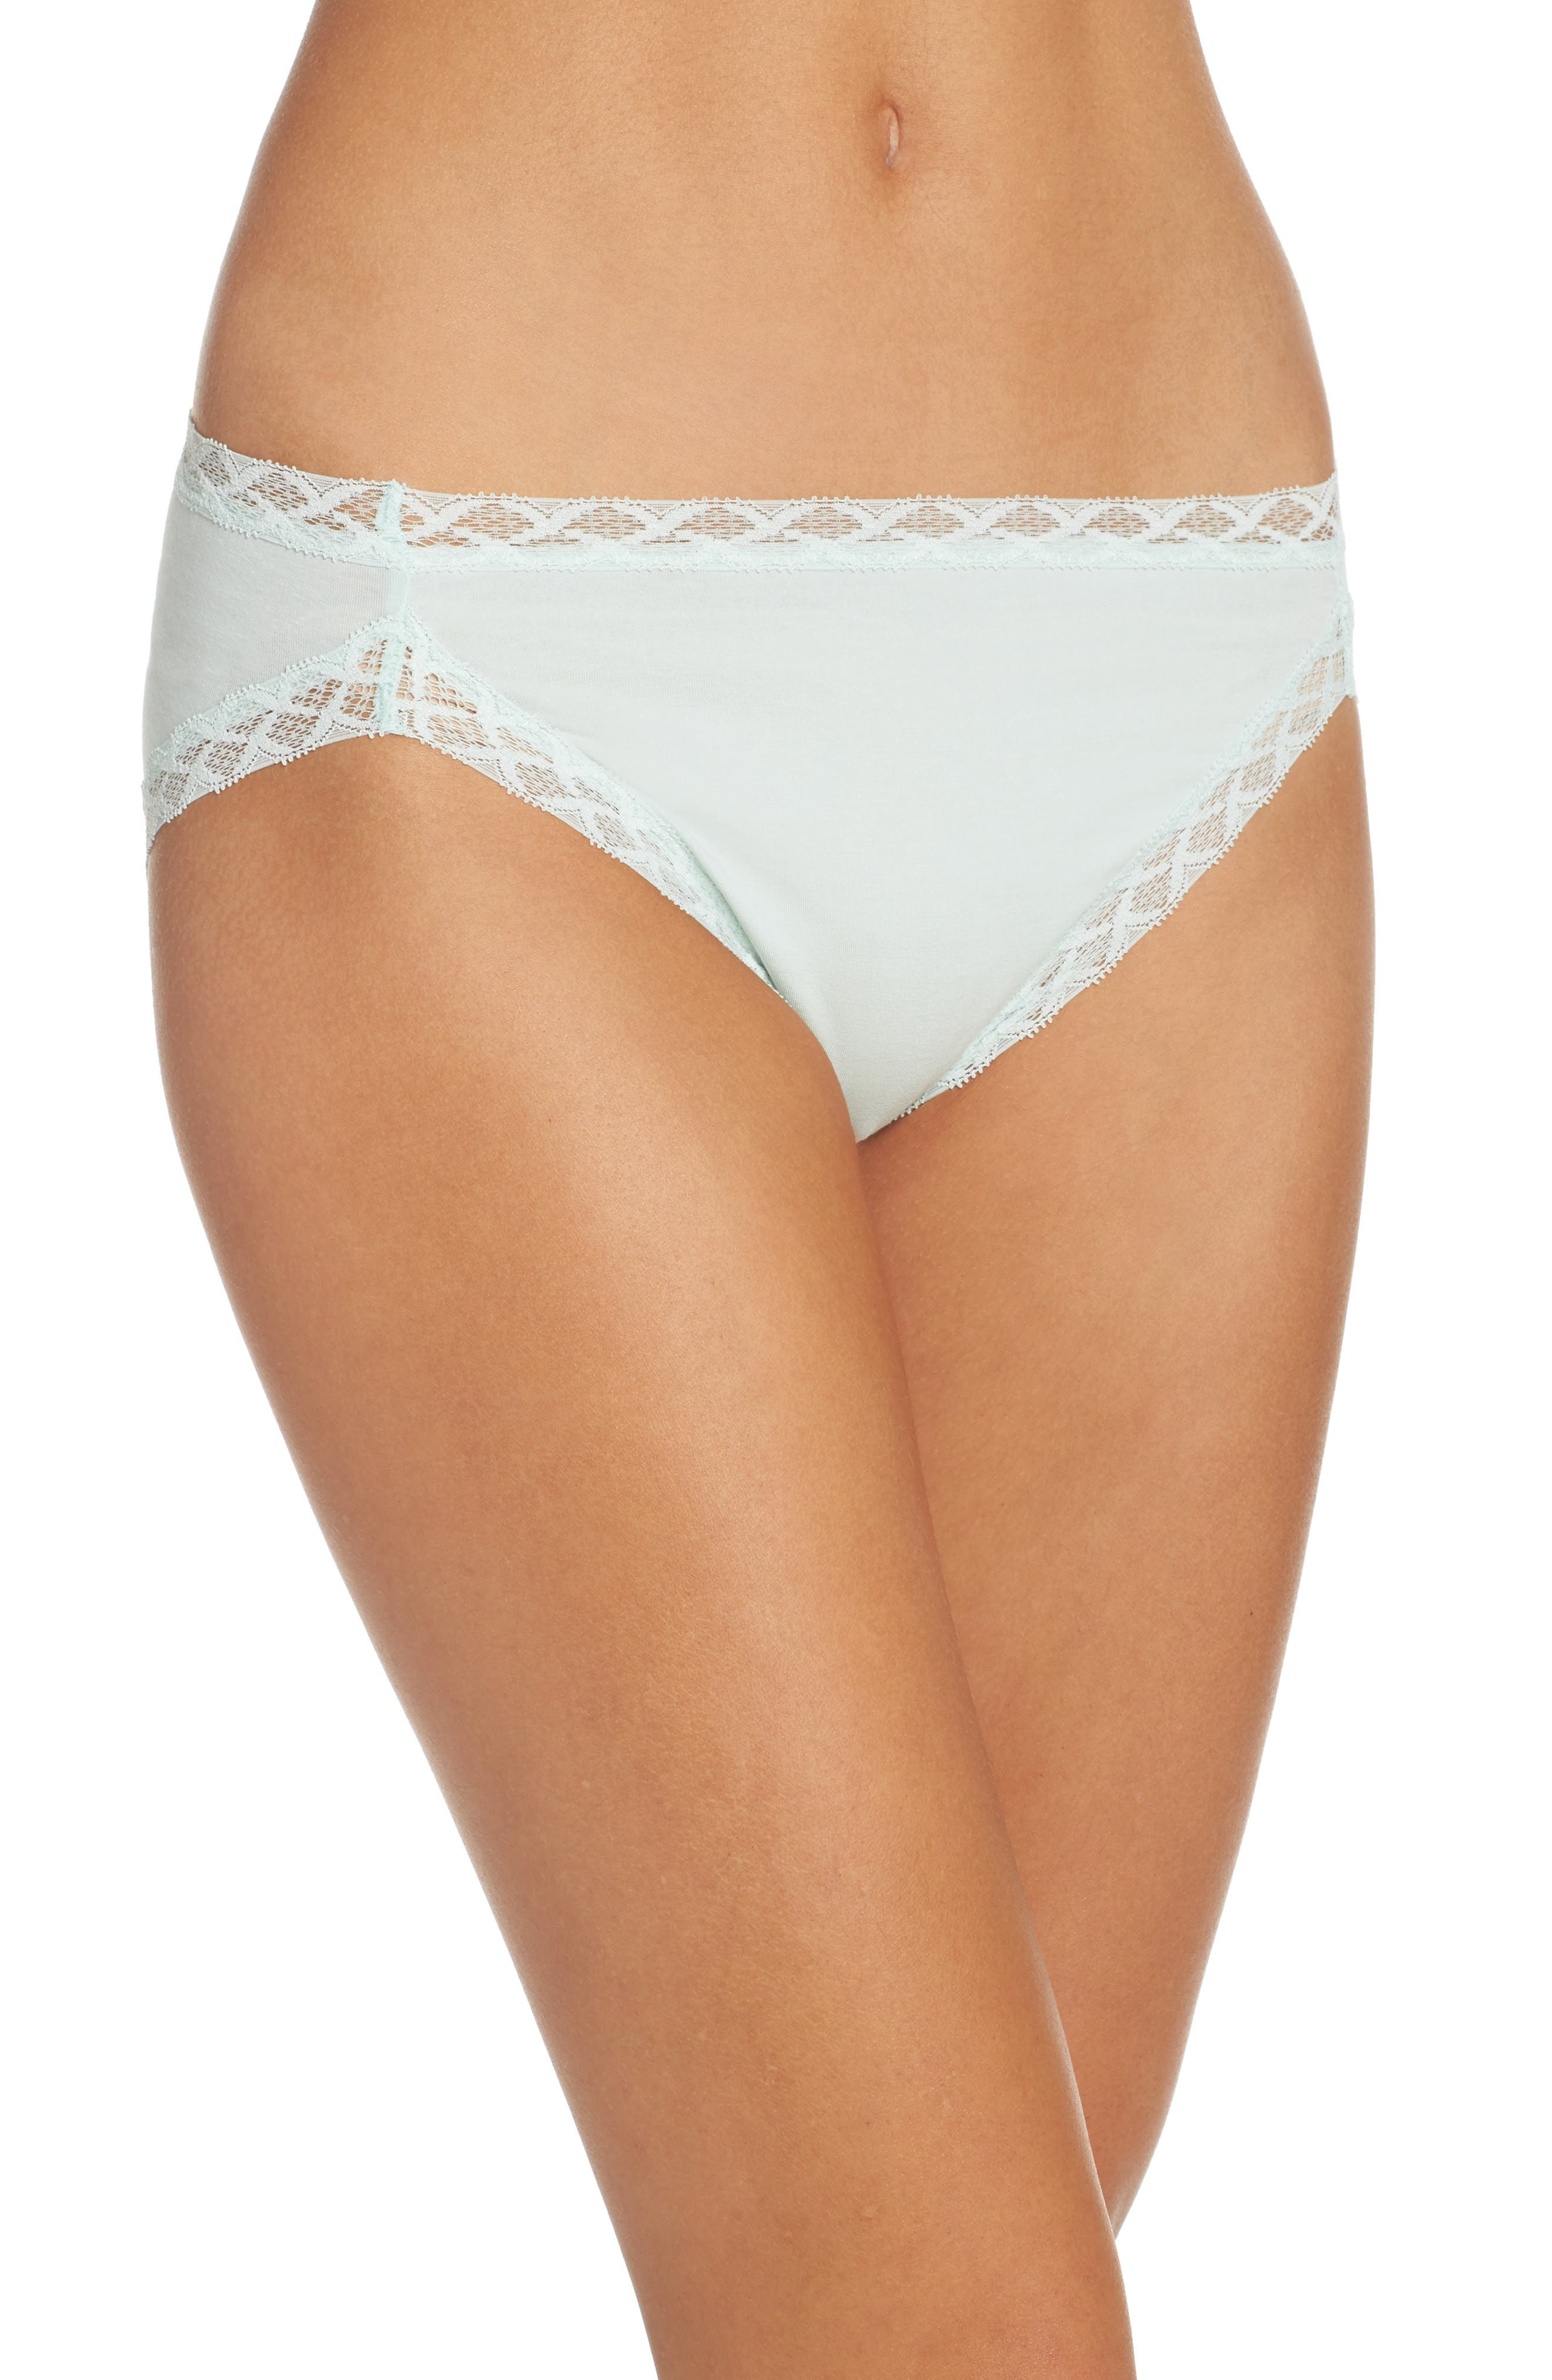 Alternate Image 1 Selected - Natori 'Bliss' French Cut Briefs (3 for $45)